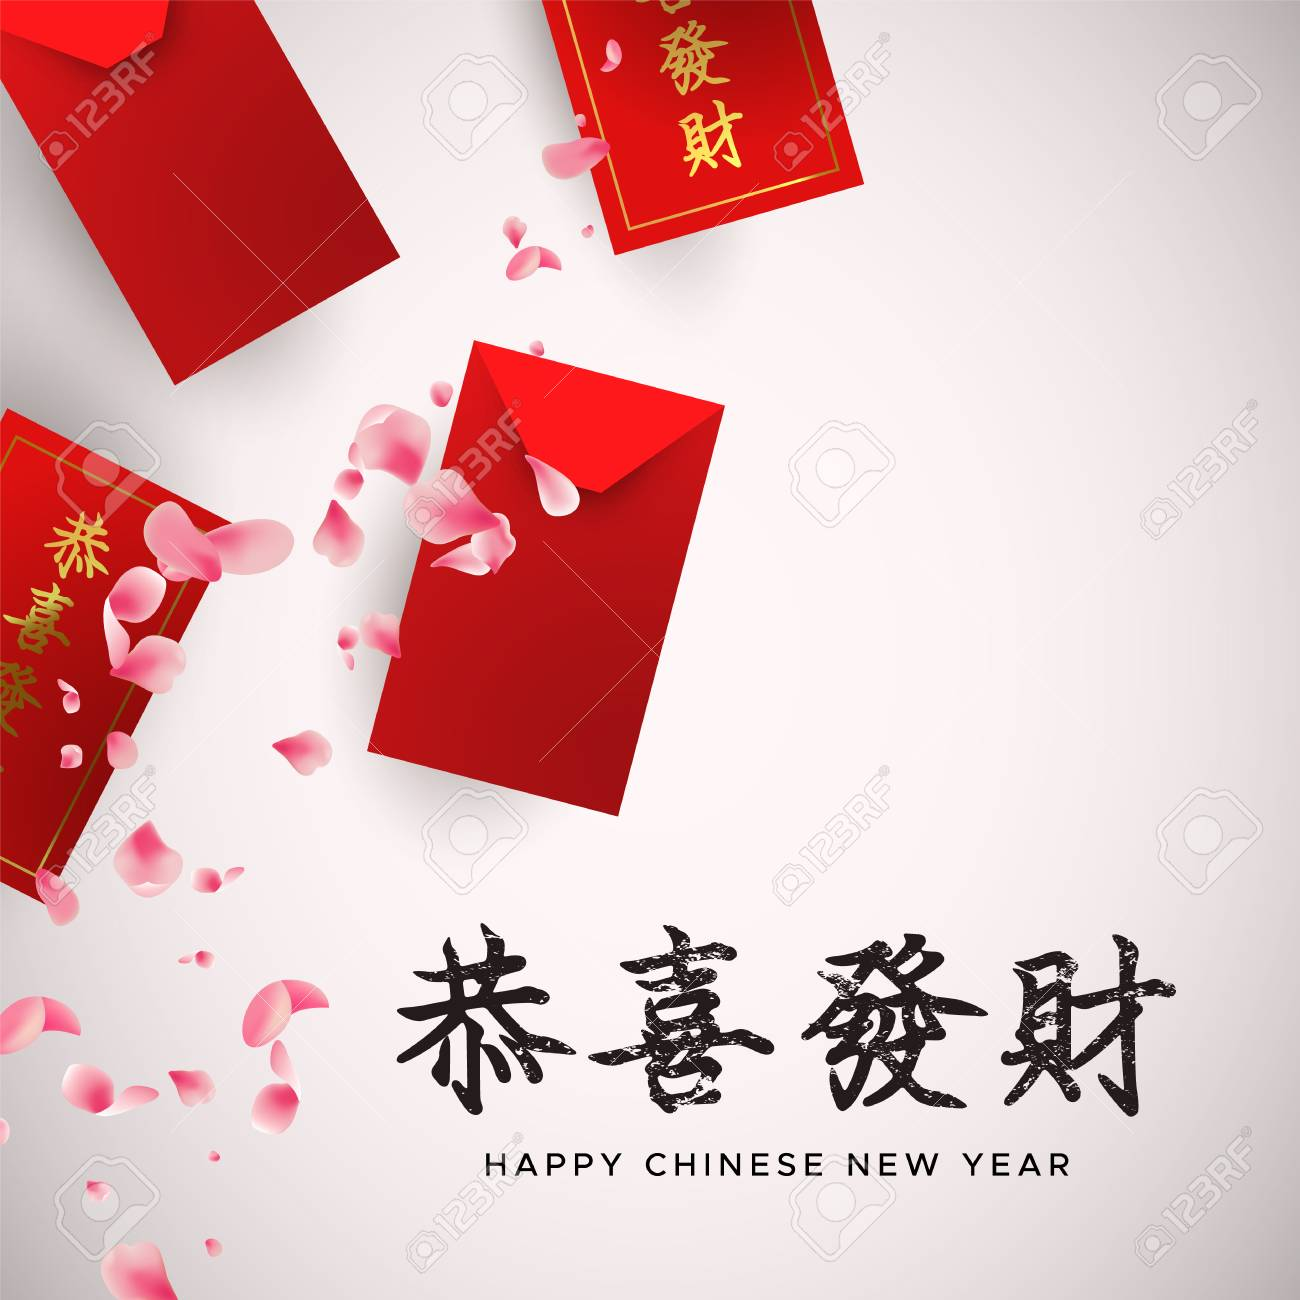 Chinese New Year 2019 card illustration. Realistic 3d red money packet and pink blossom flower petals. Hieroglyph symbol translation: fortune, prosperity wishes. - 116551390